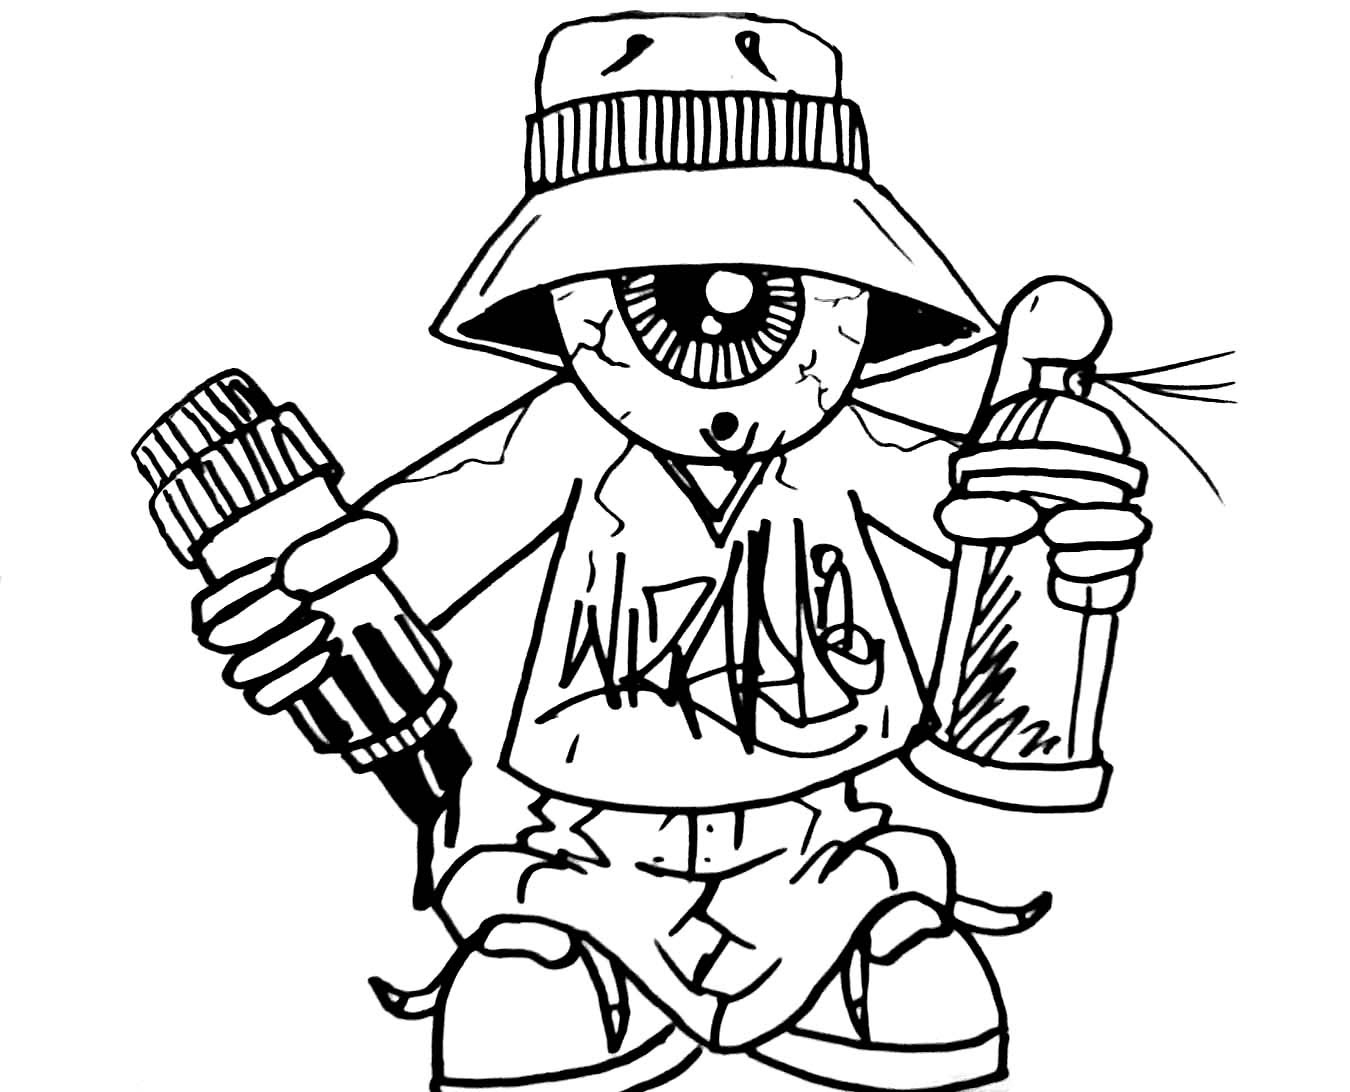 cool coloring pages for teenagers graffiti coloring pages for teens and adults best cool teenagers coloring for pages